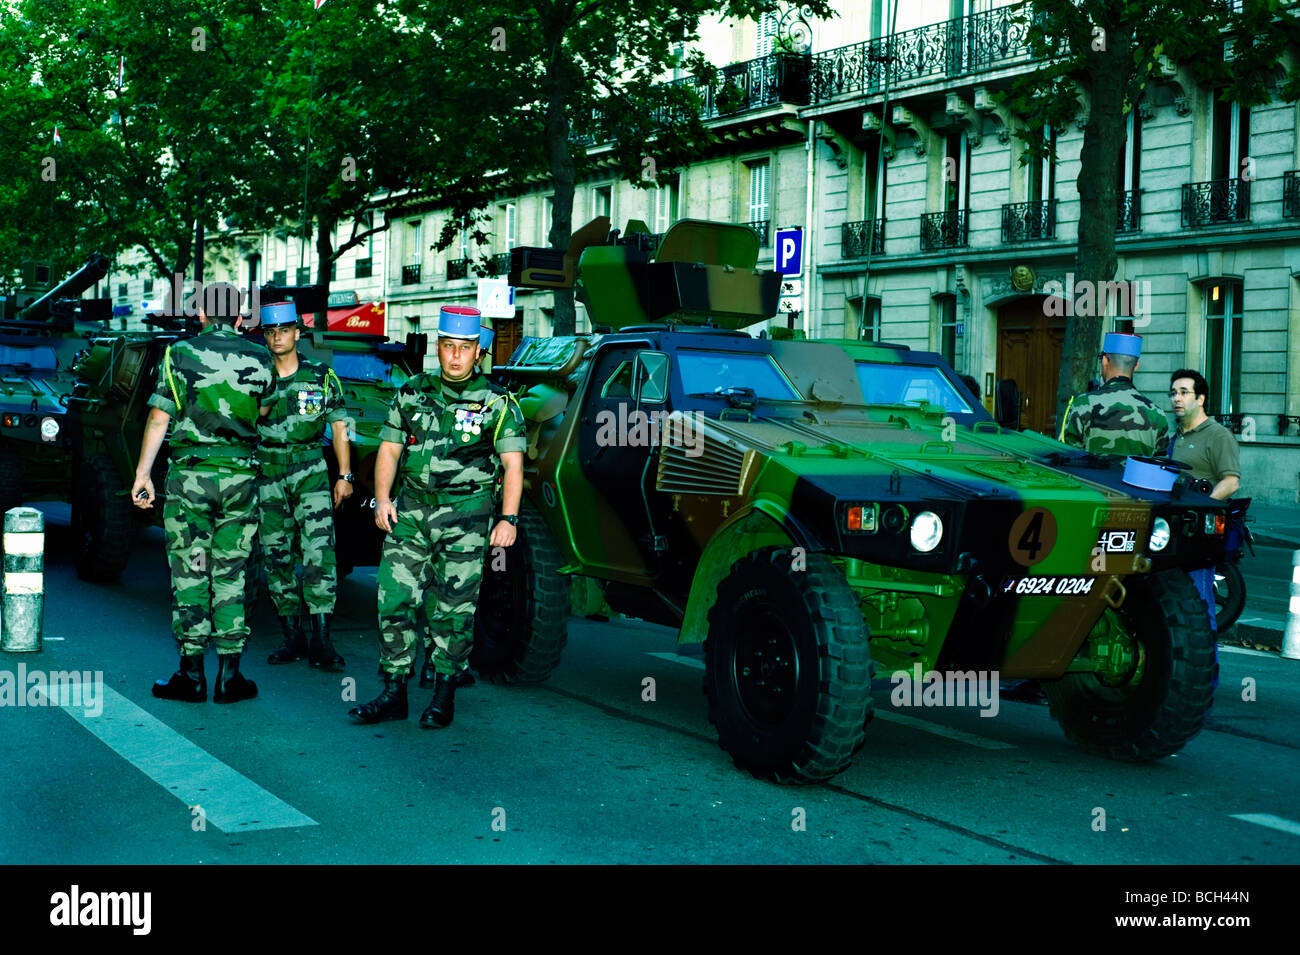 Paris France, Public Events, Bastille Day, Celebration '14th of July' Military Parade  French Army Man - Stock Image